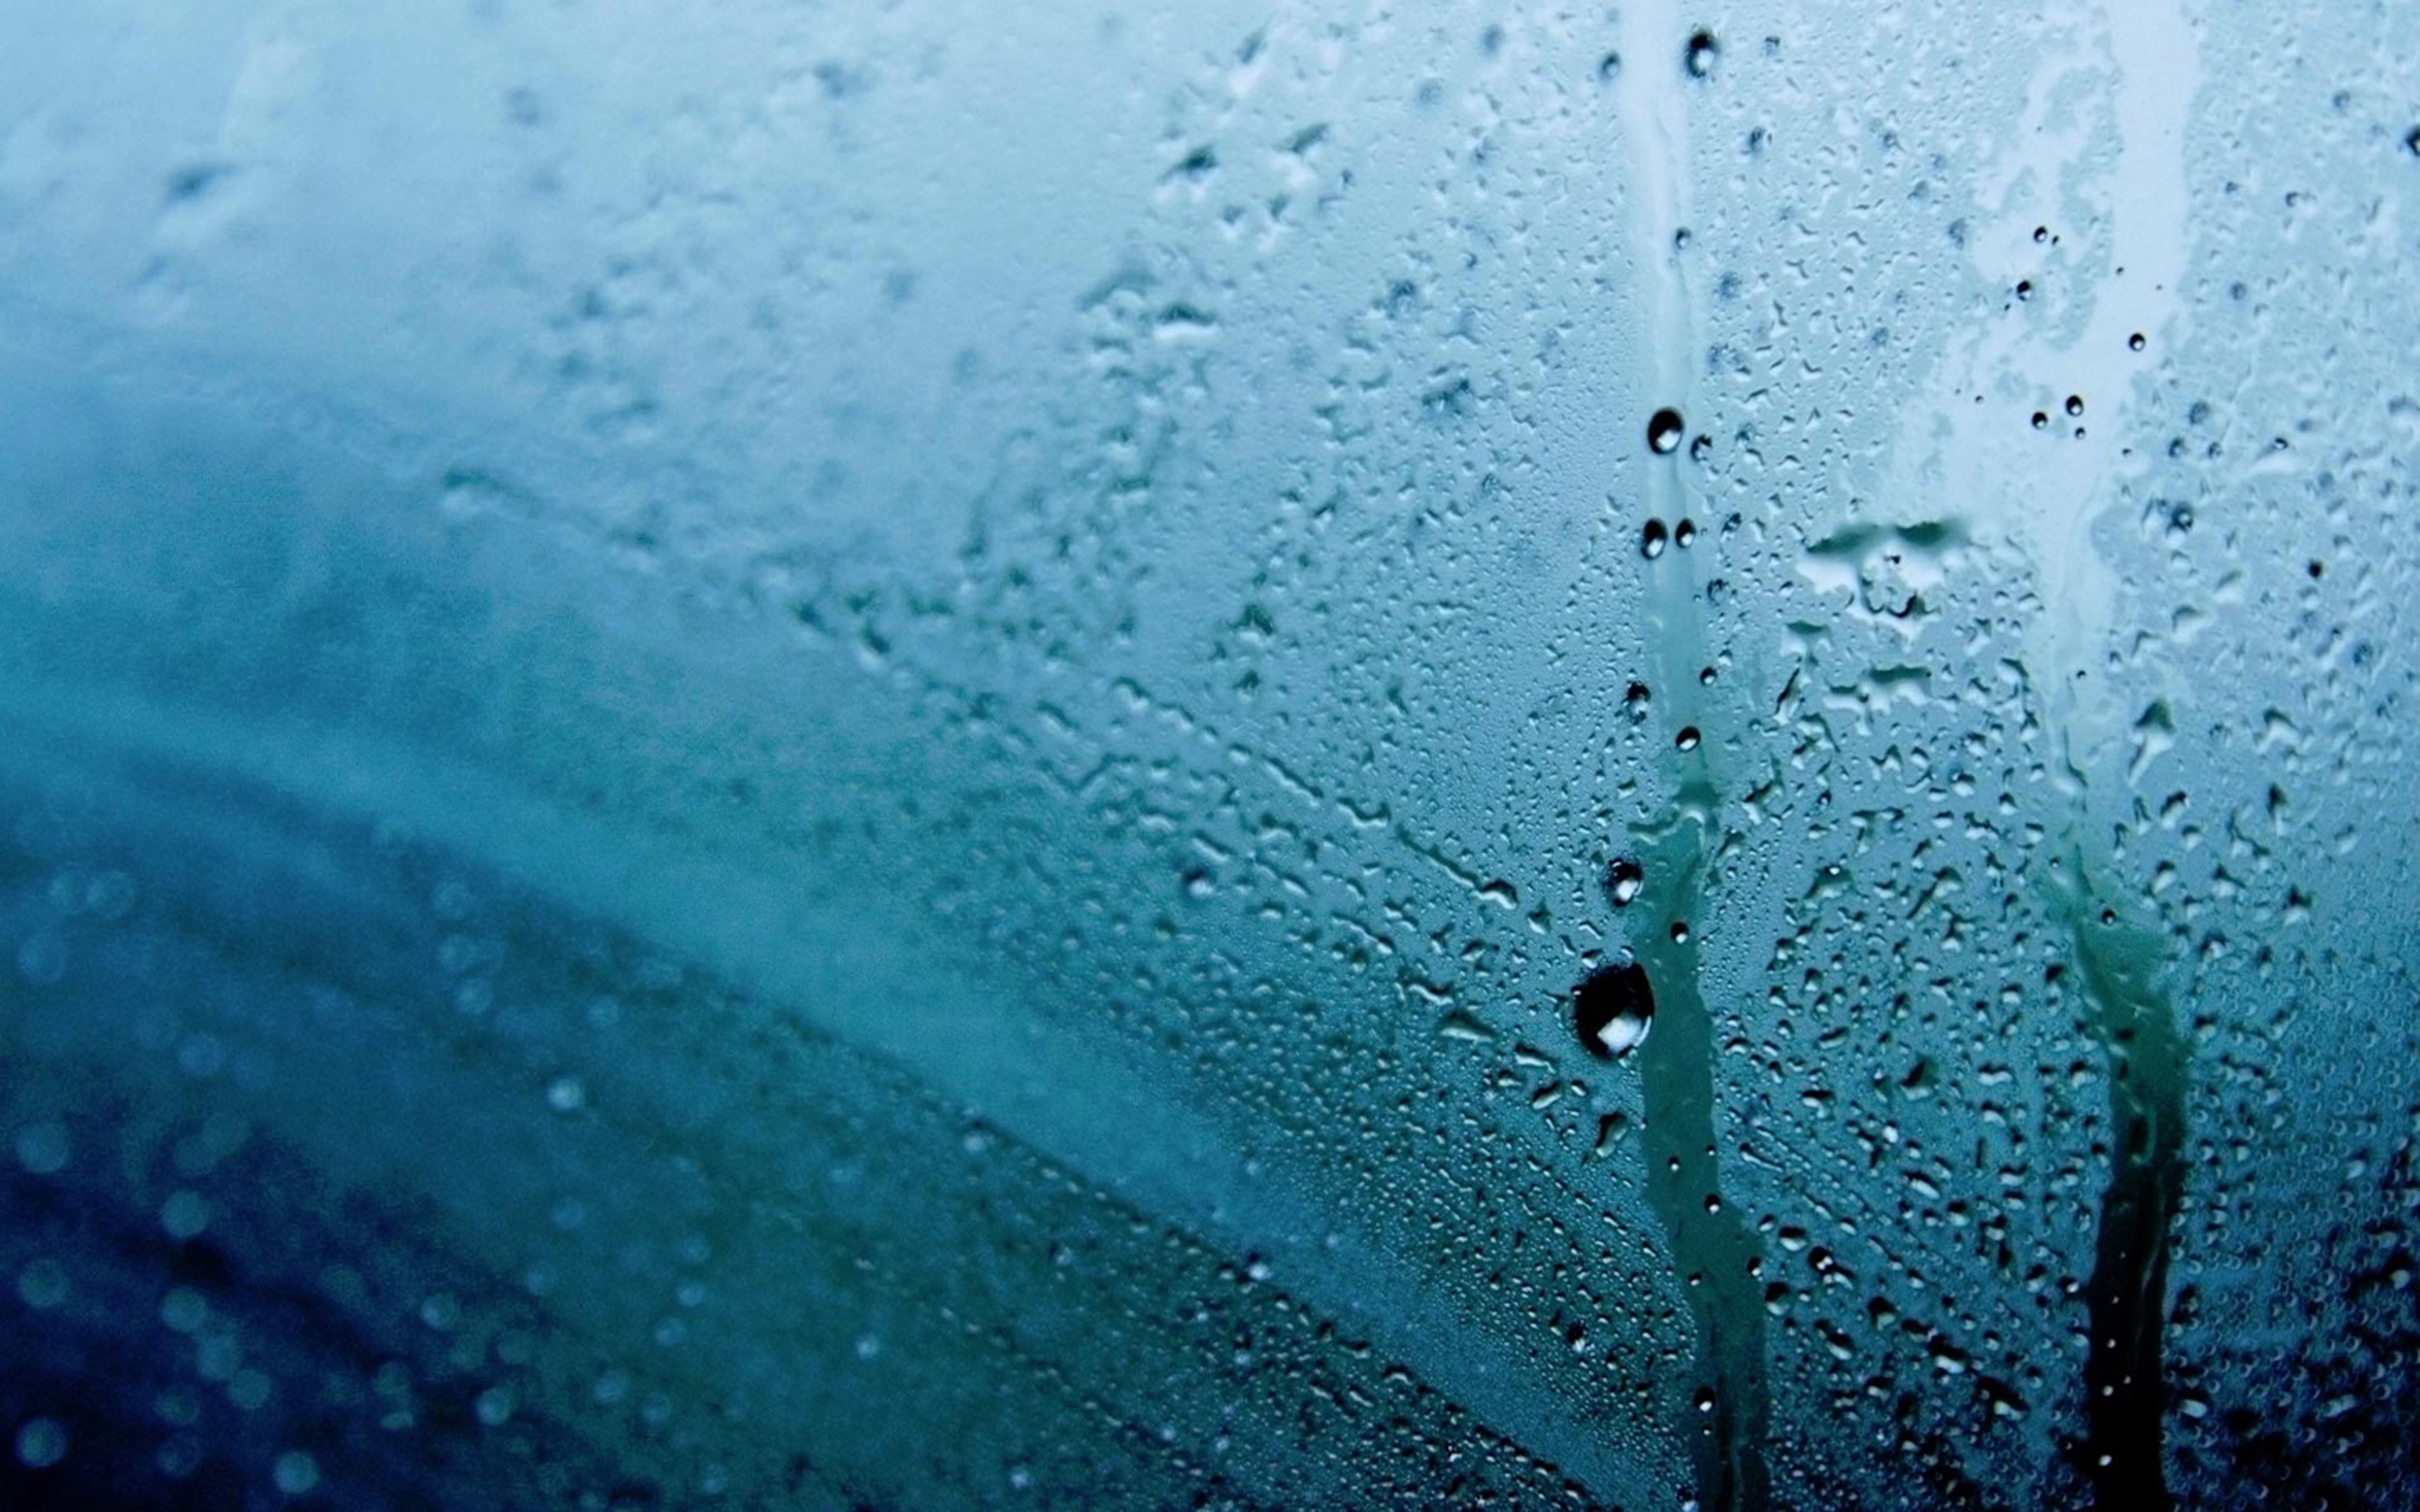 Rain   Free Desktop Wallpapers for HD, Widescreen and Mobile